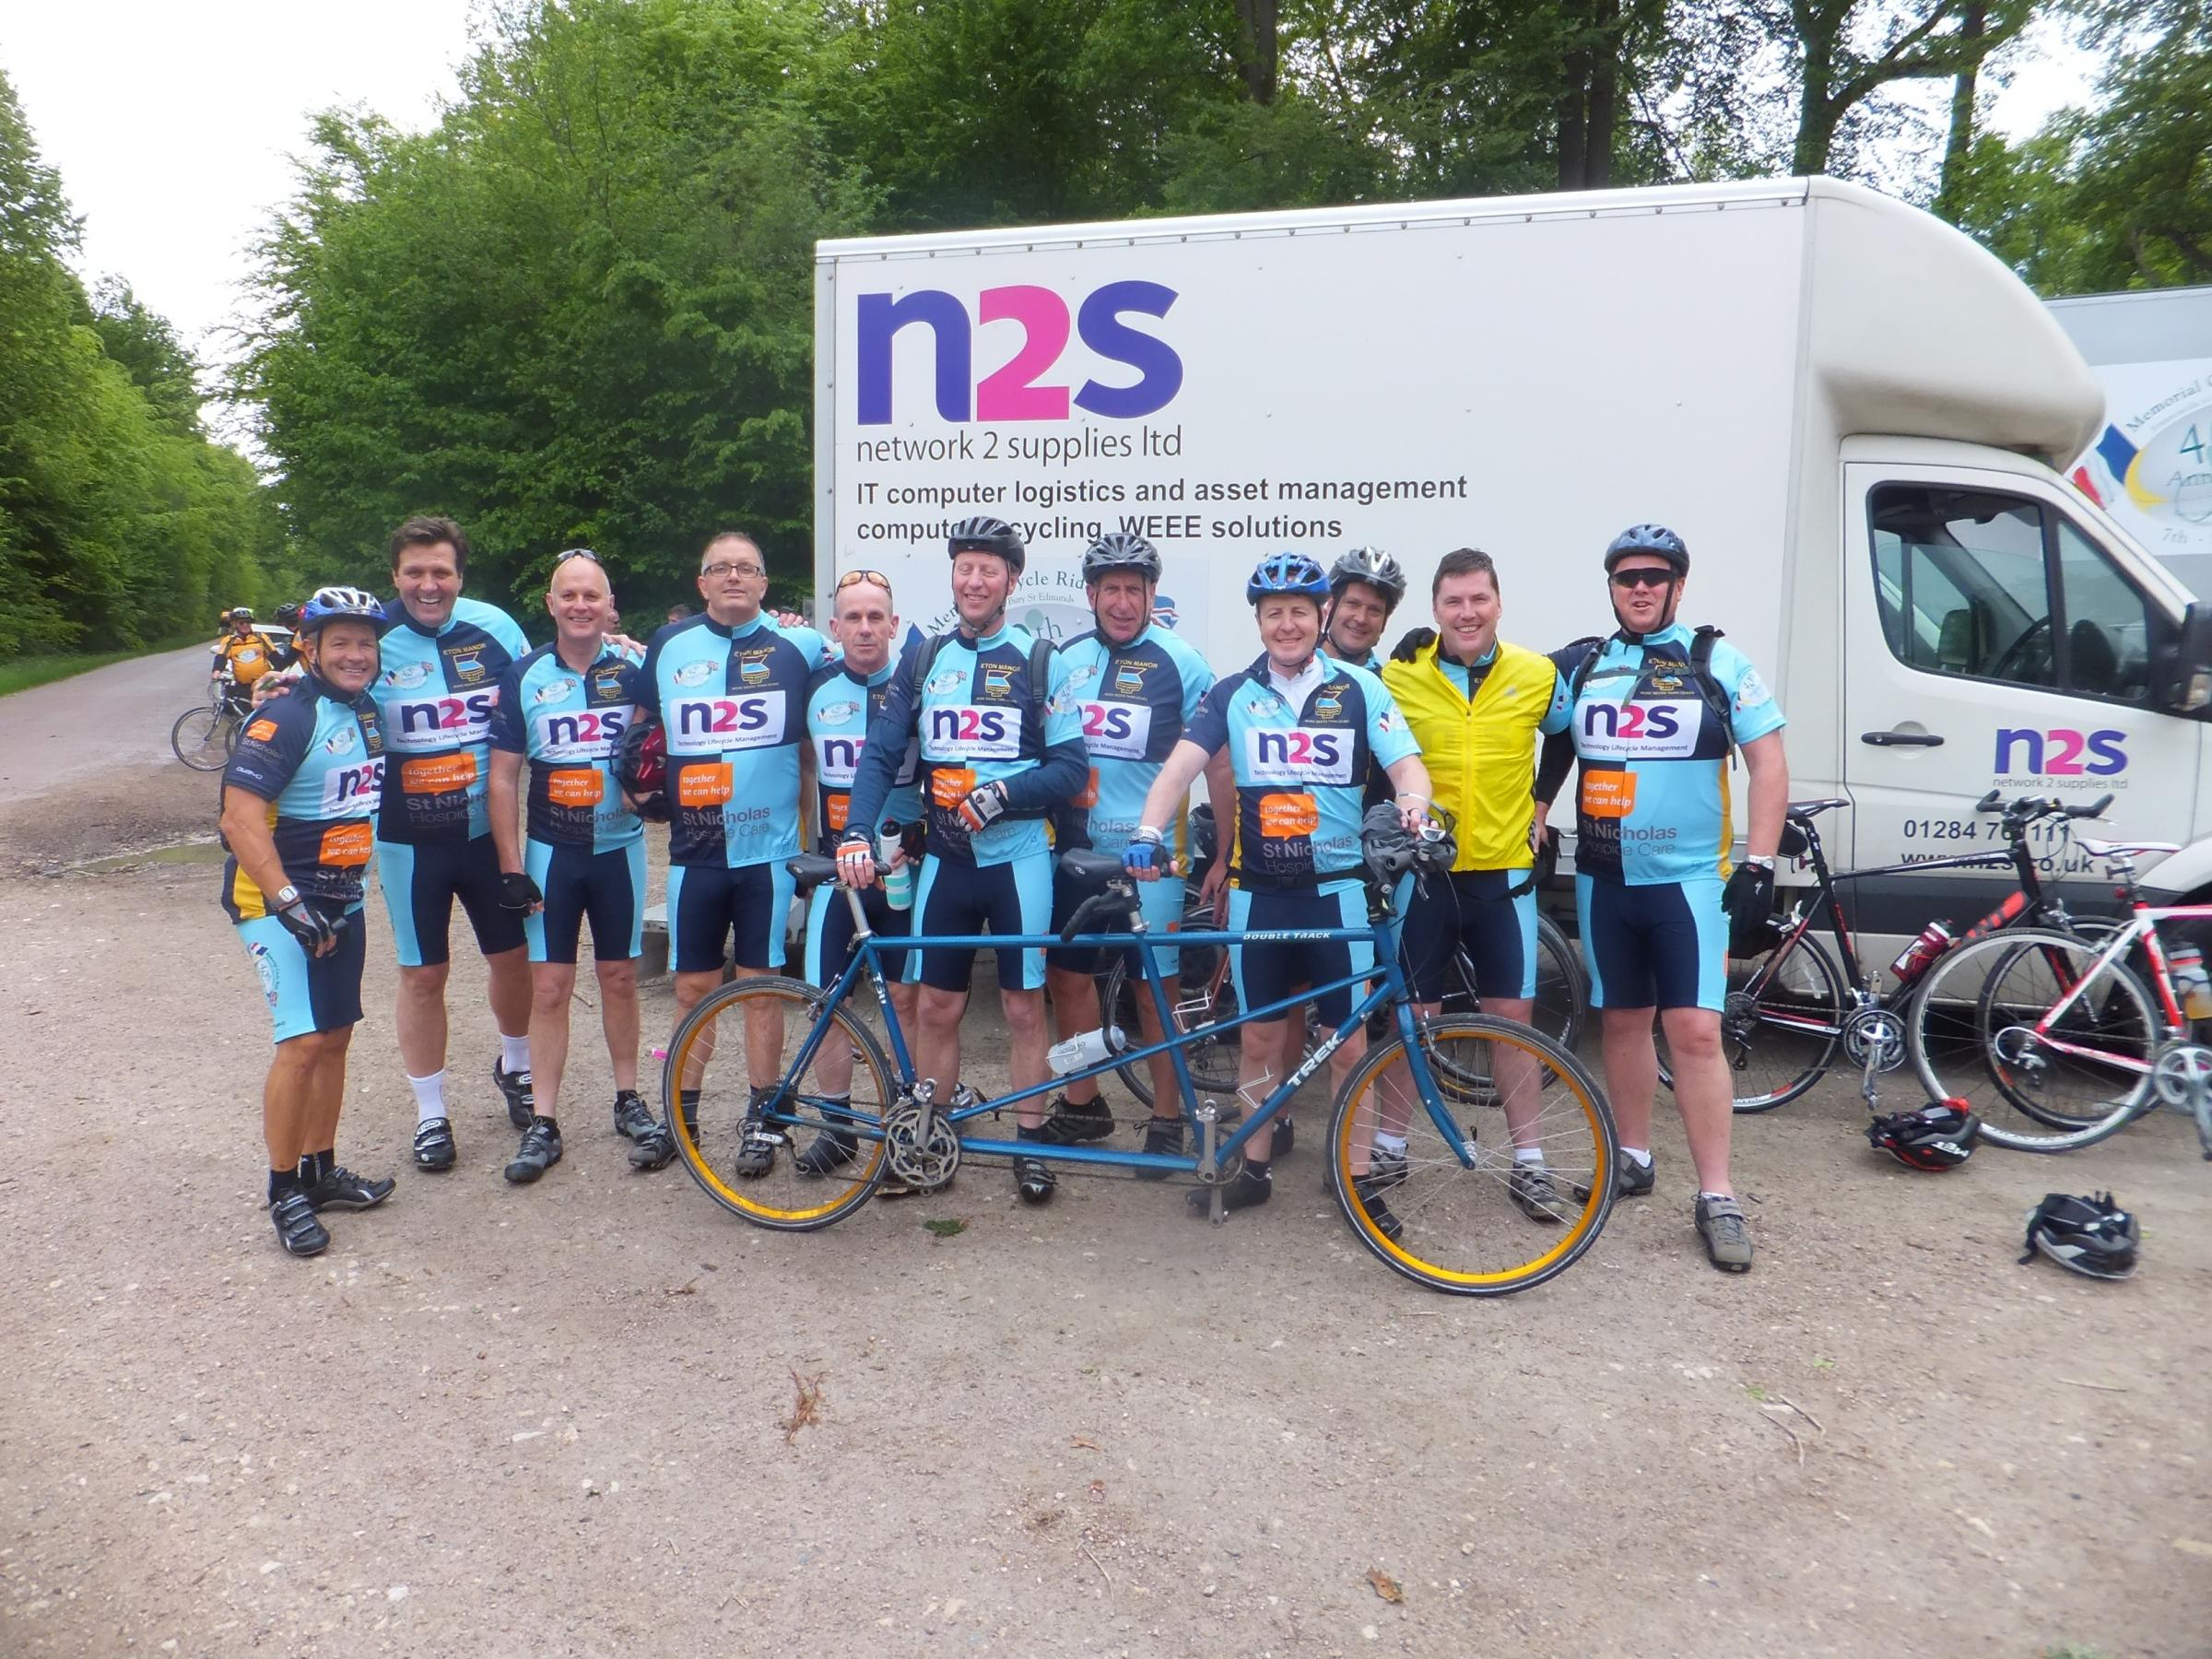 The 11 members of the Wanstead-based Eton Manor Cycling Club